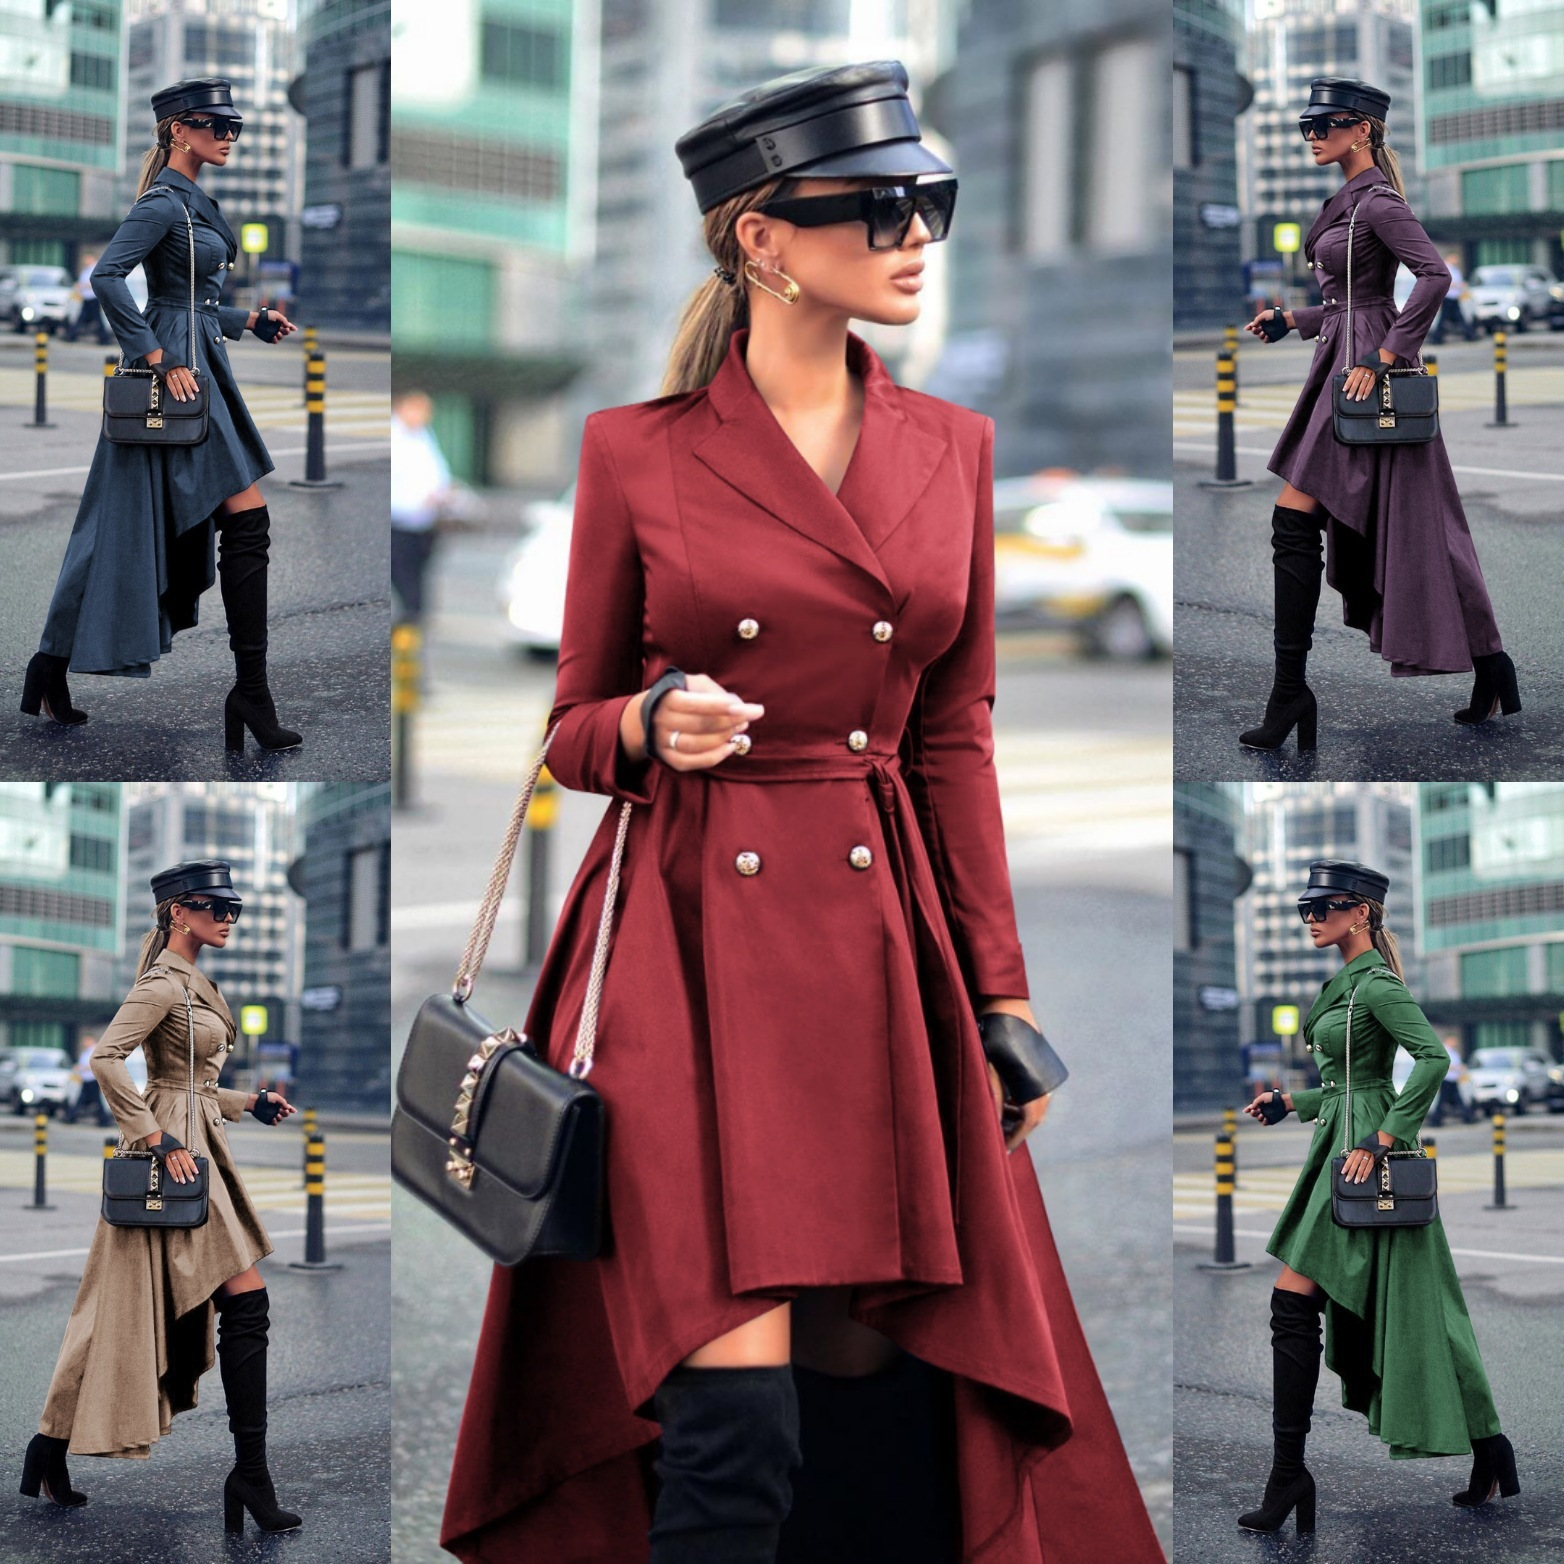 High Low Women Plus Size Dresses Solid Burgundy Khaki Double Breasted Suit Jacket Designer Ladies Blazer Dress Work Wear Tops